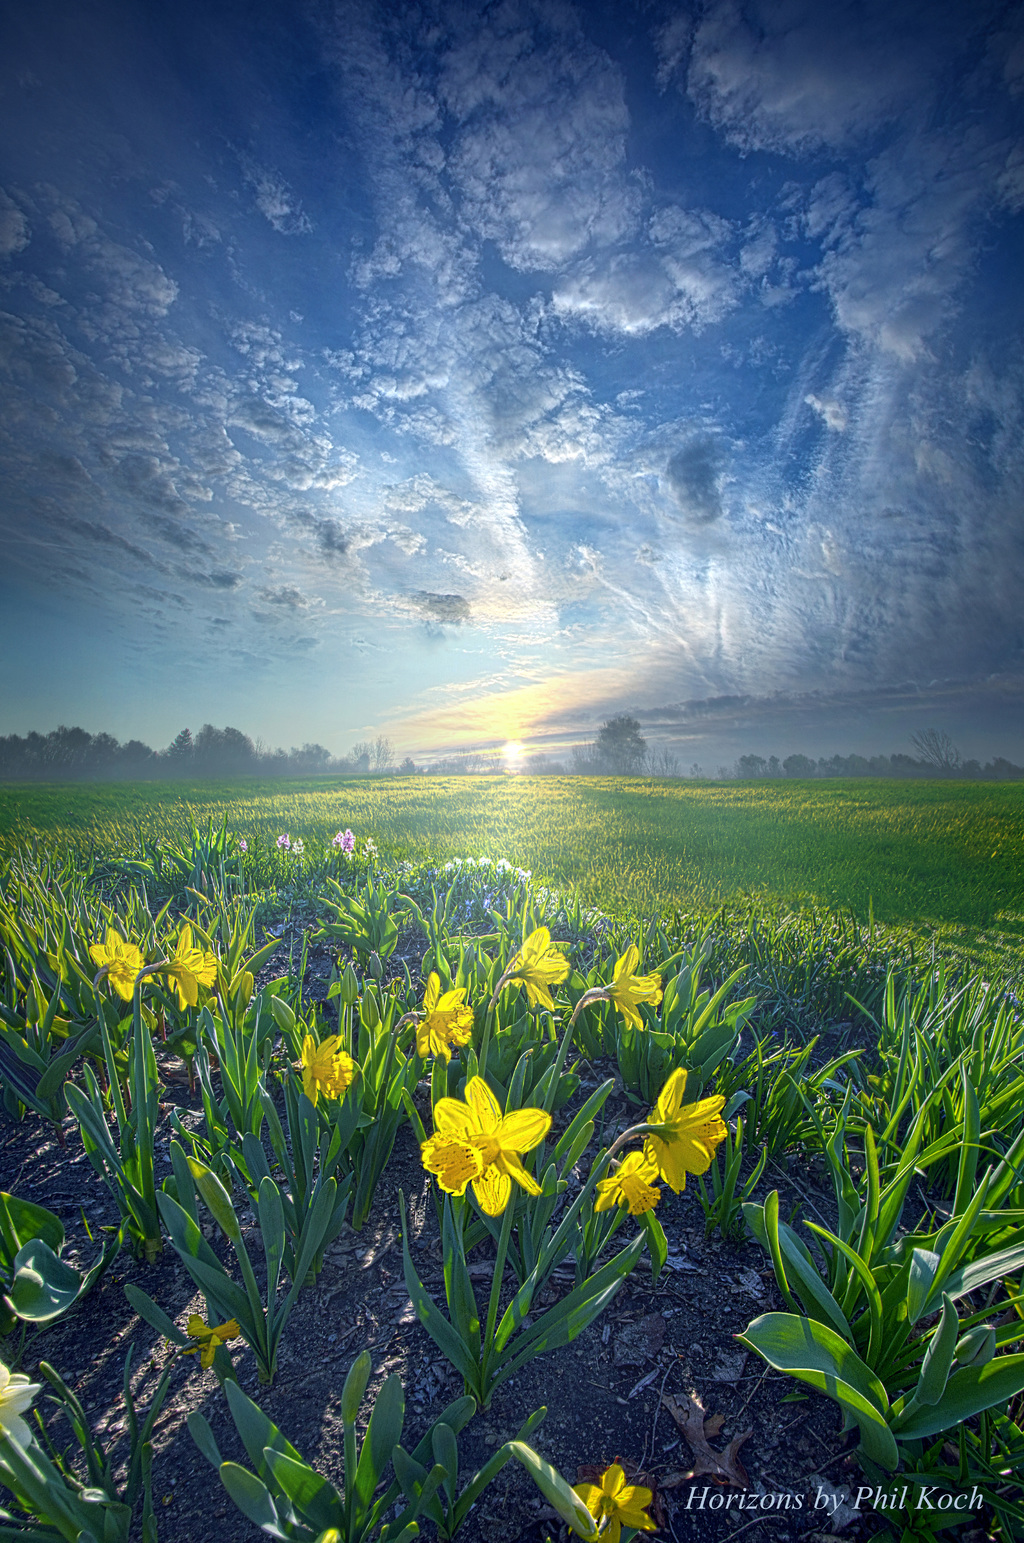 """""""All I Have To Do Is Dream""""                                         Horizons by Phil Koch, turning l... via Phil Koch"""